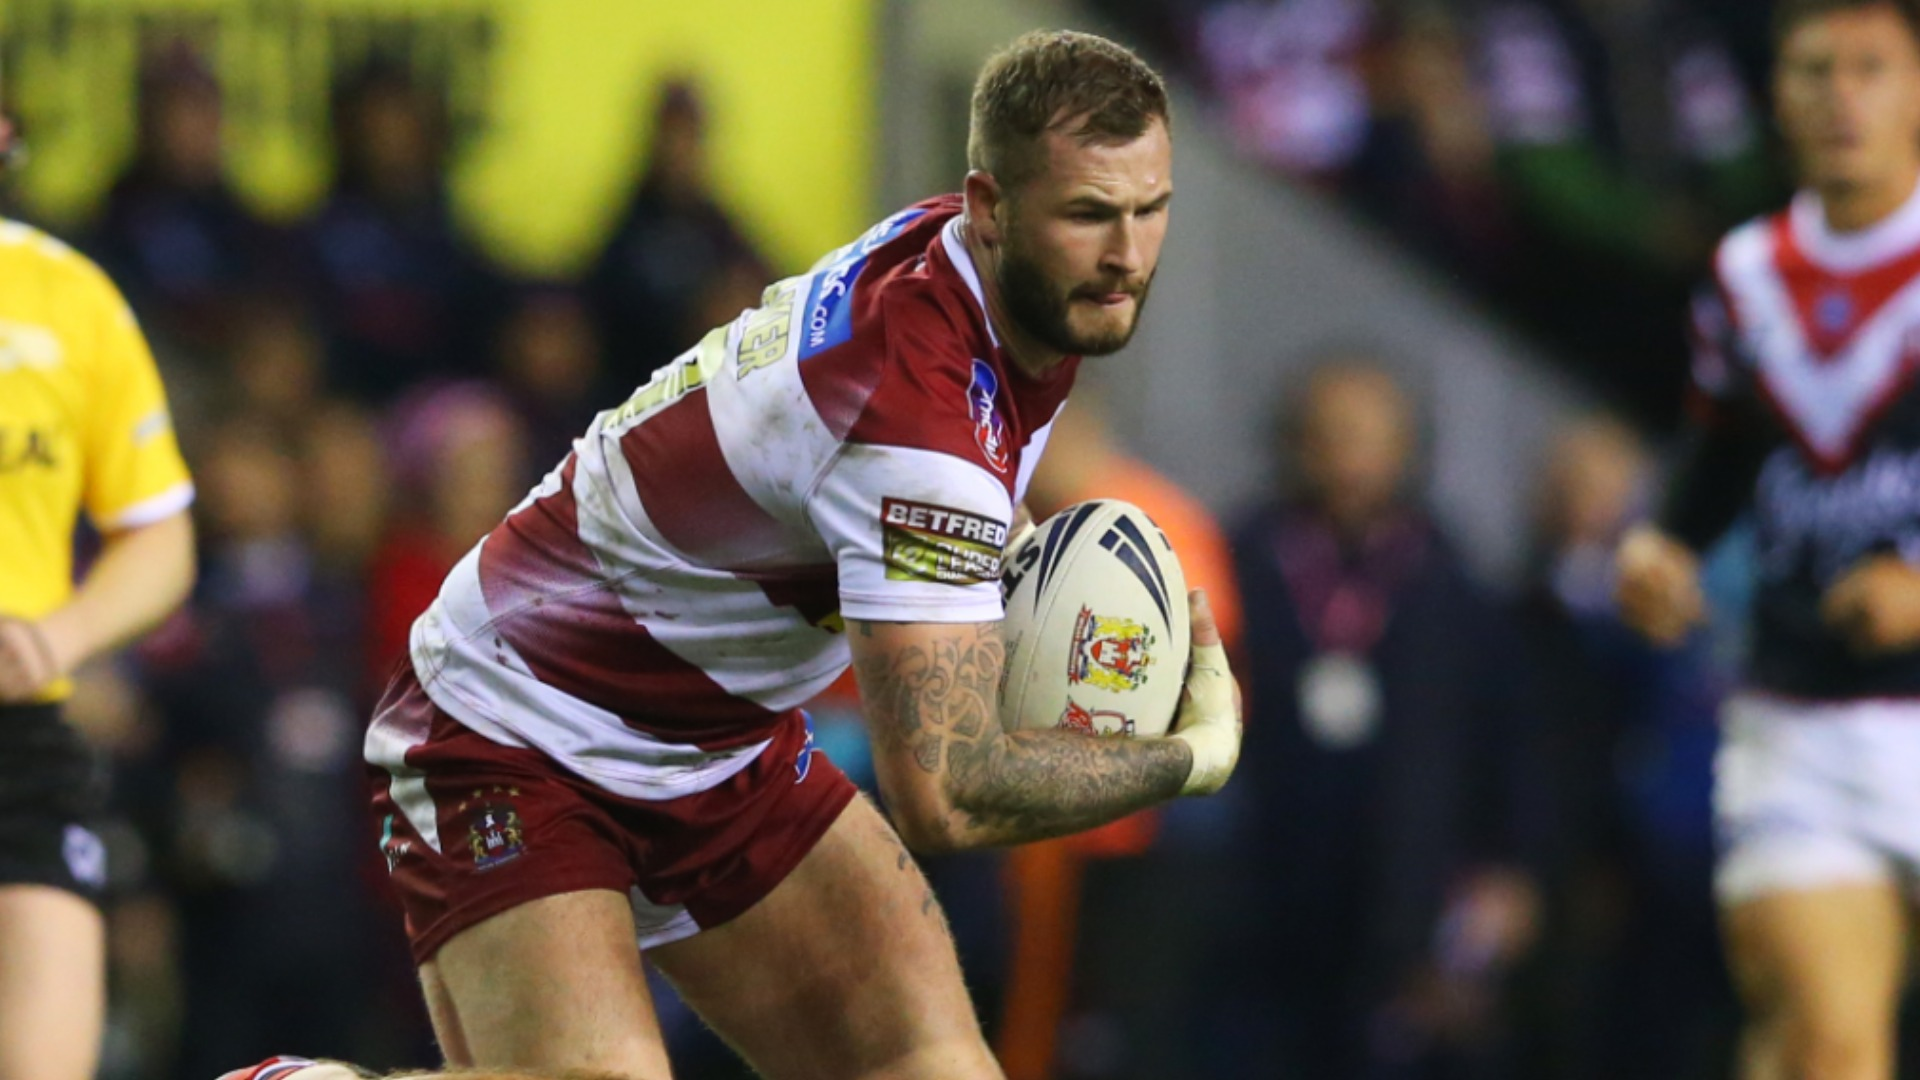 Wigan Warriors 20-6 Warrington Wolves: Ruthless hosts keep winning